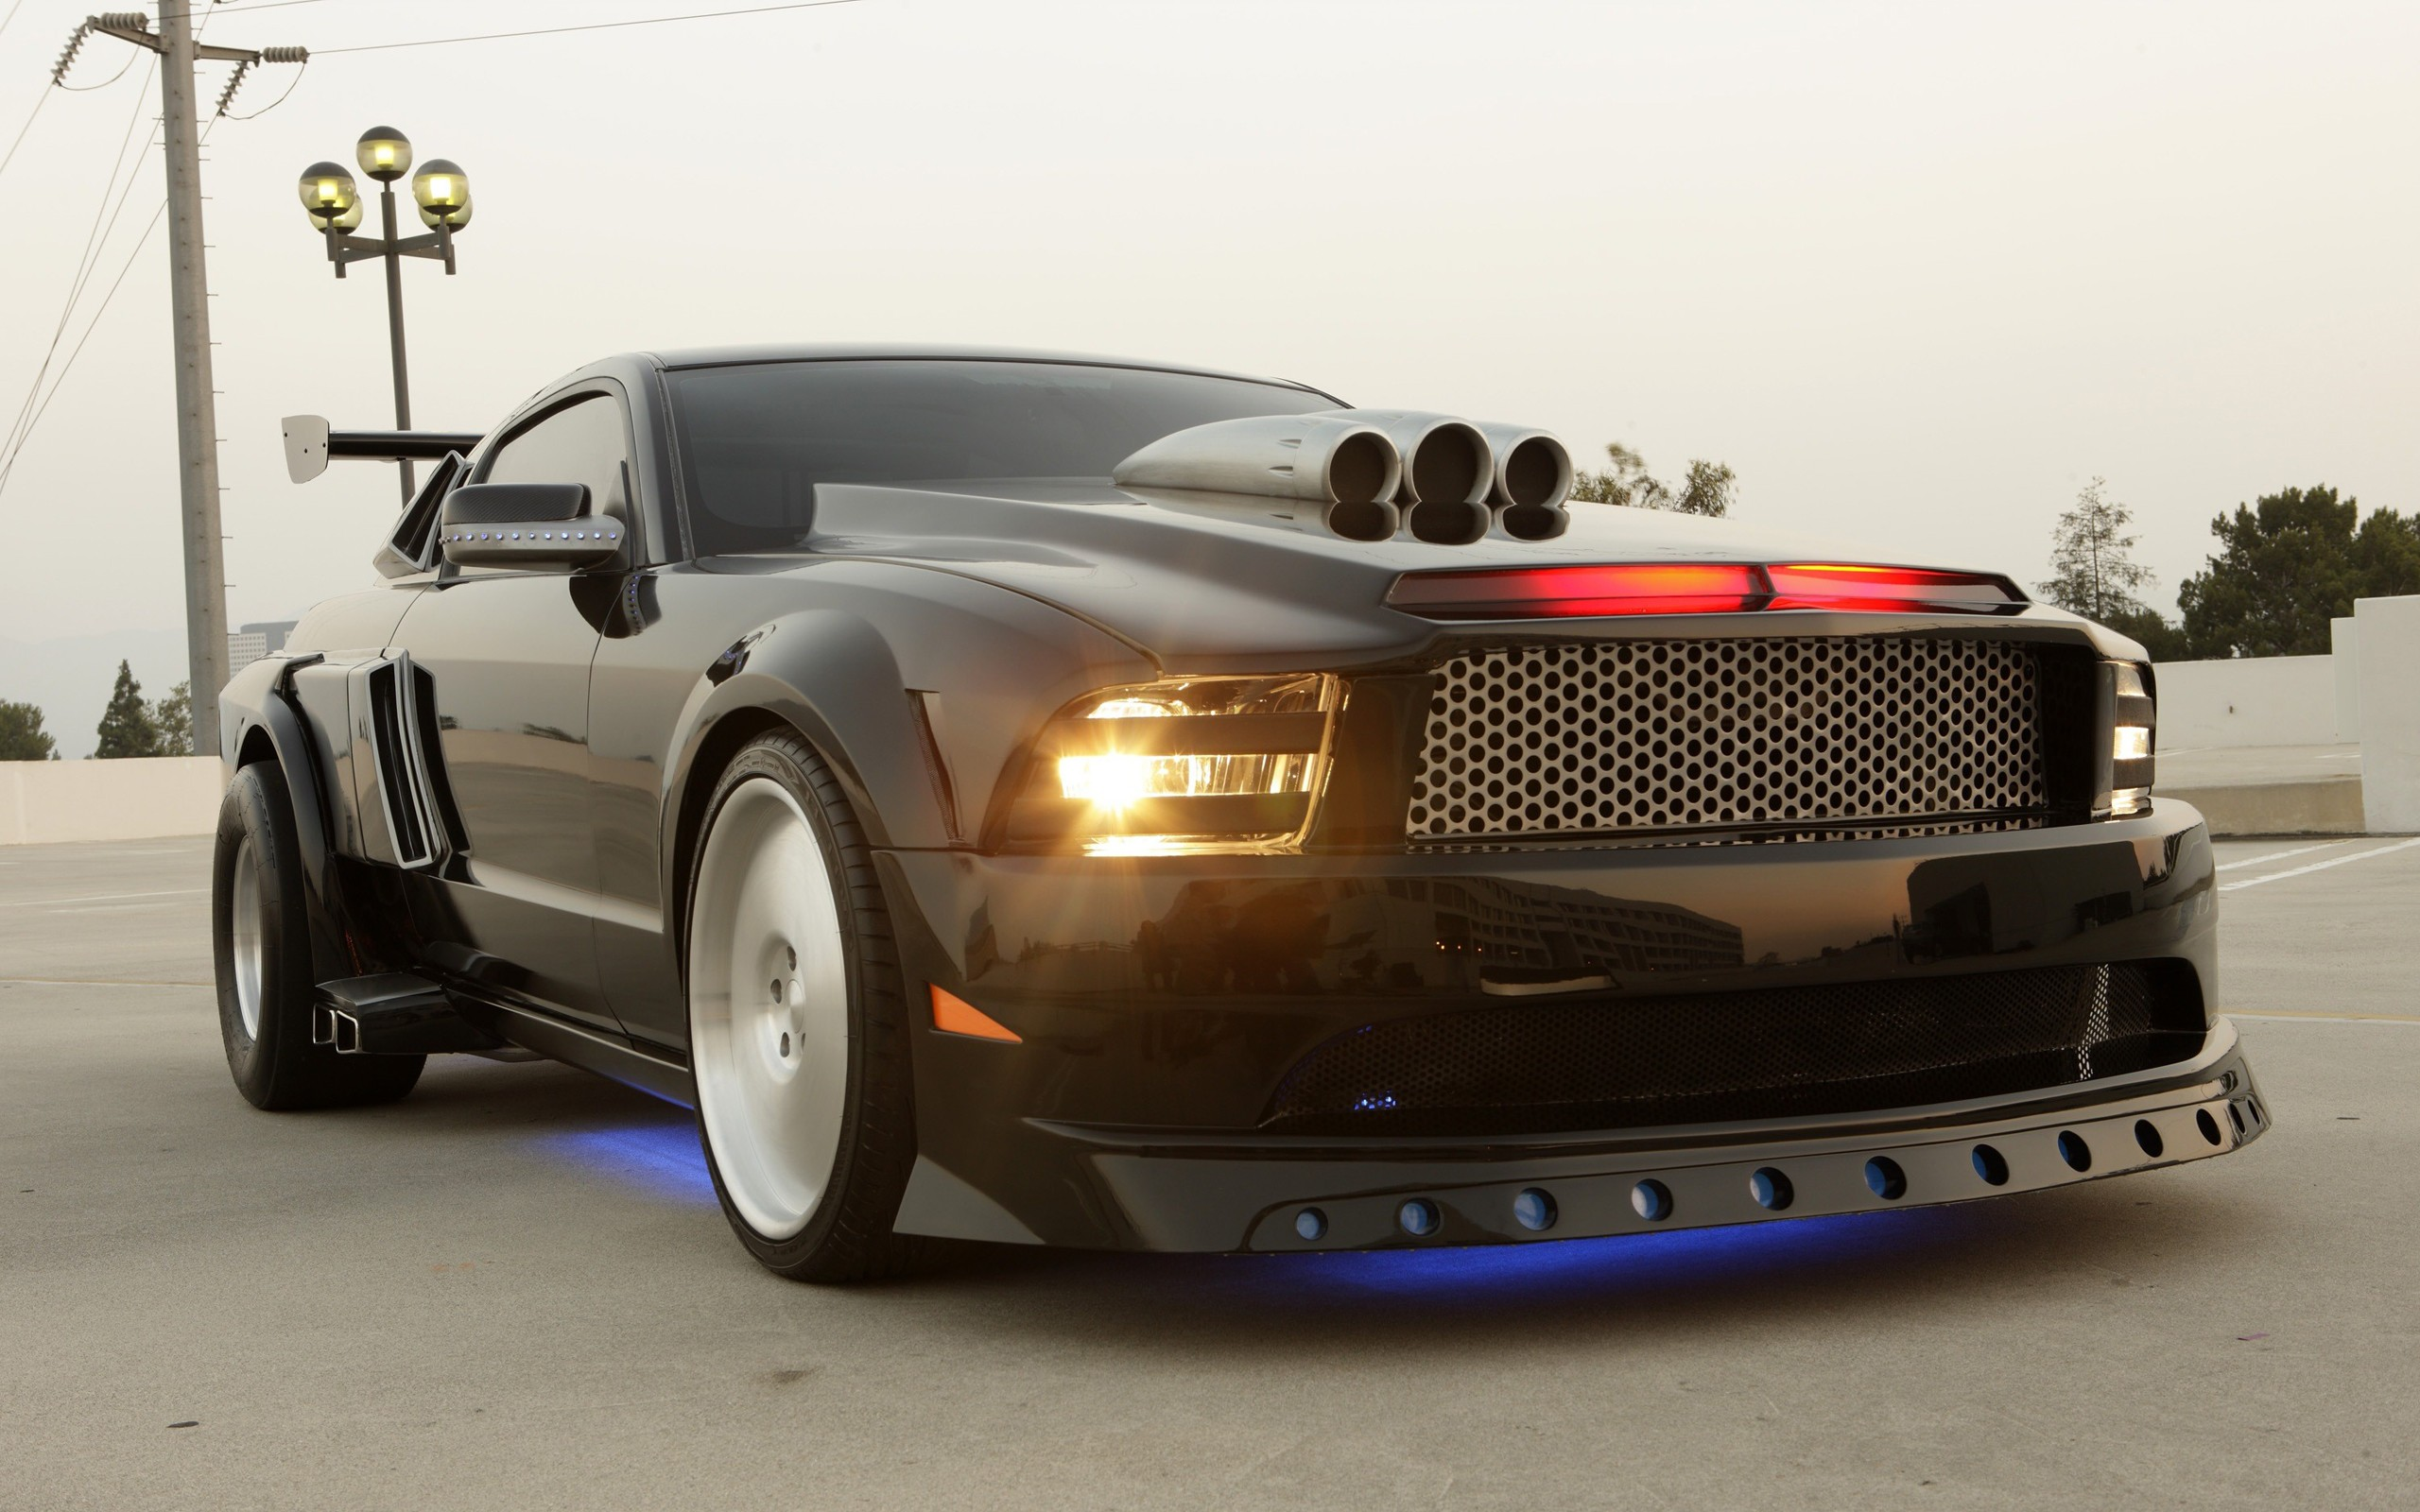 Cars Muscle Cars Vehicles Tuning Ford Mustang Knight Rider